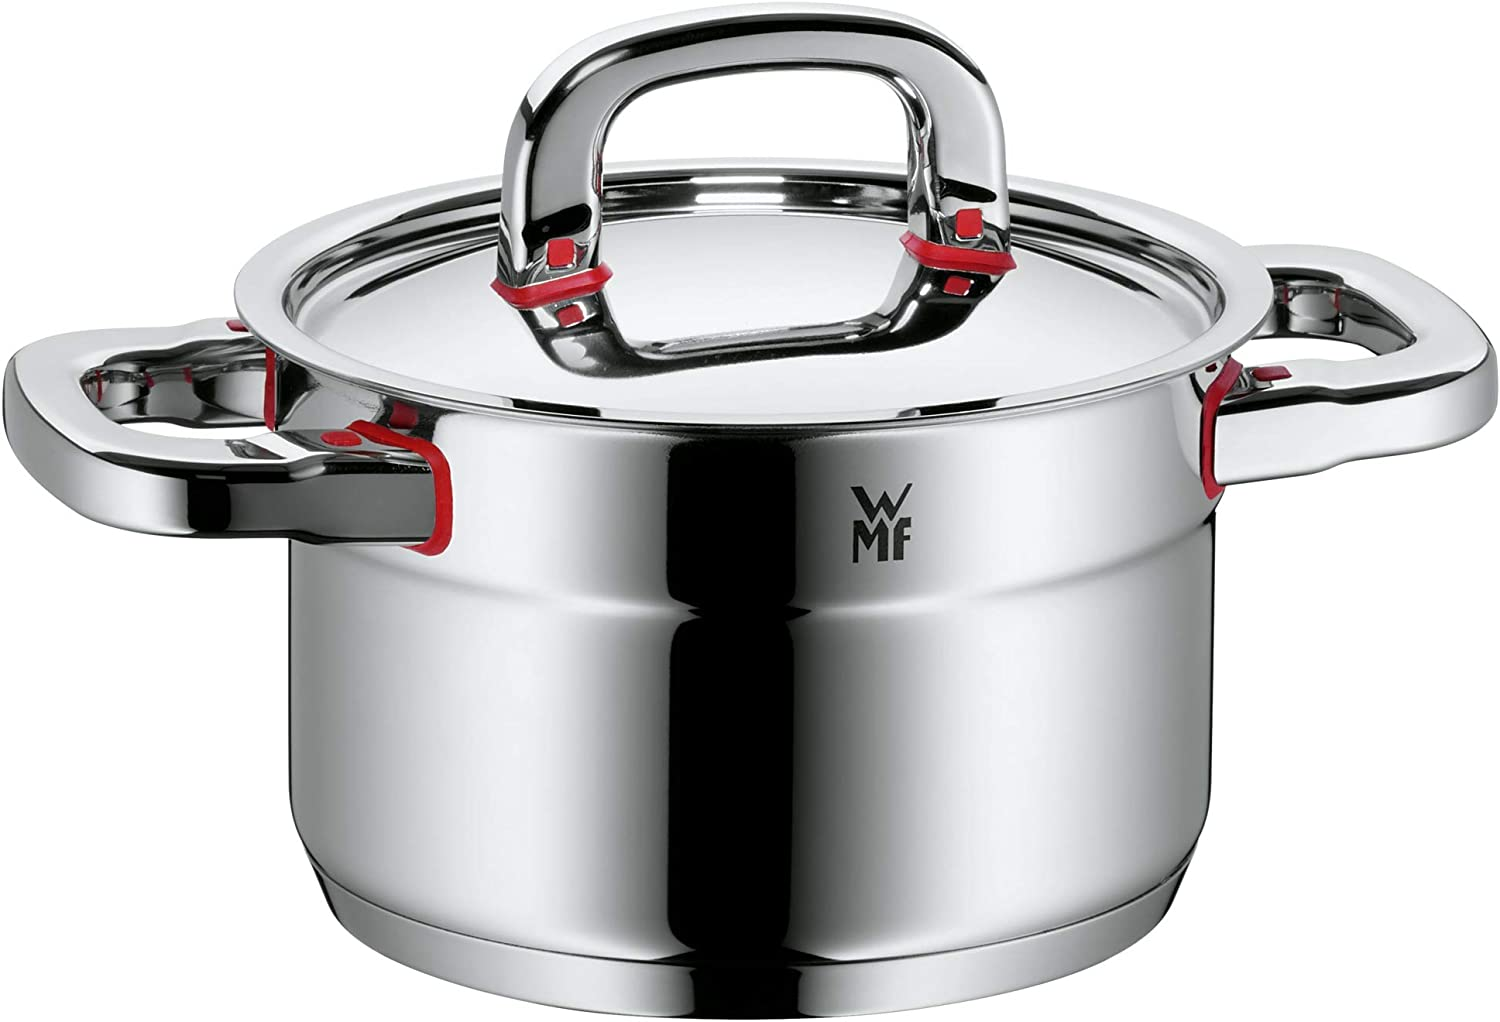 WMF cookware /Ø 20 cm approx 3,3l Premium One Inside scaling vapor hole Made in Germany Cool Technology metal lid Cromargan stainless steel brushed suitable for all stove tops including induction dishwasher-safe